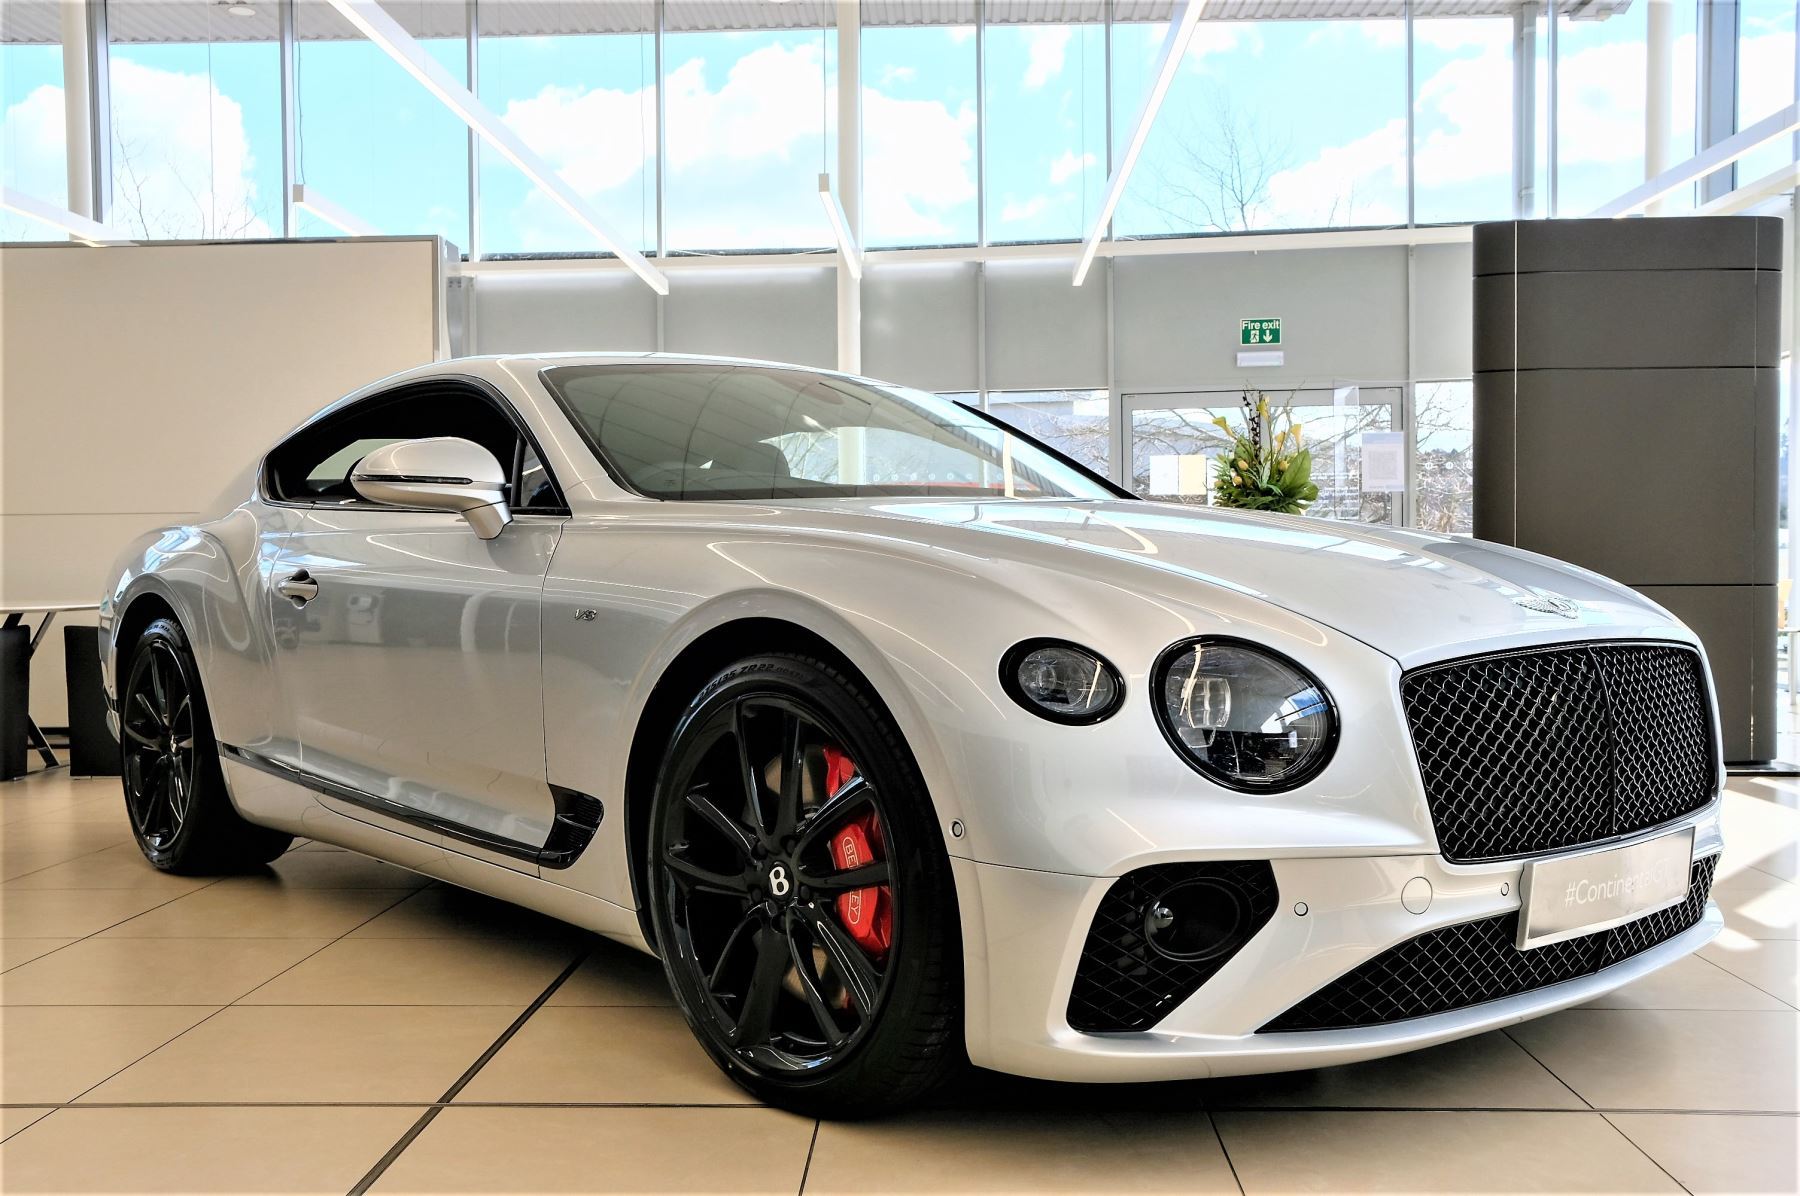 Bentley Continental GT 4.0 V8 Mulliner Edition 2dr Auto [Tour Spec] Automatic Coupe (2021) image